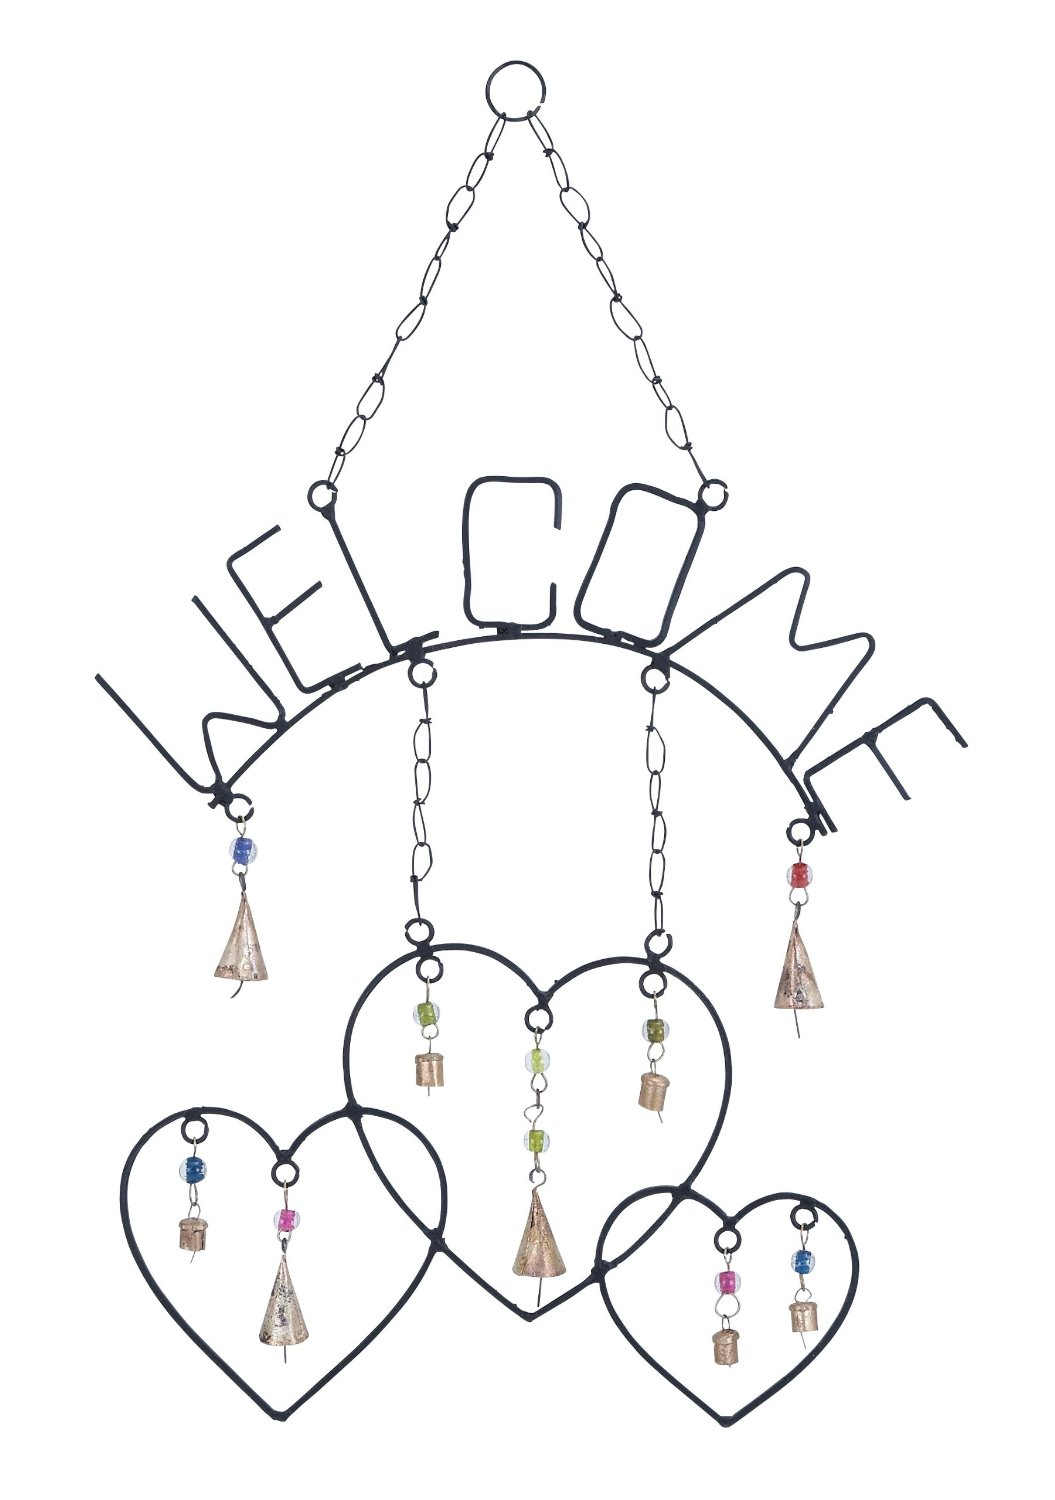 Harvey & Haley Welcome Wind Chime with Metal Design